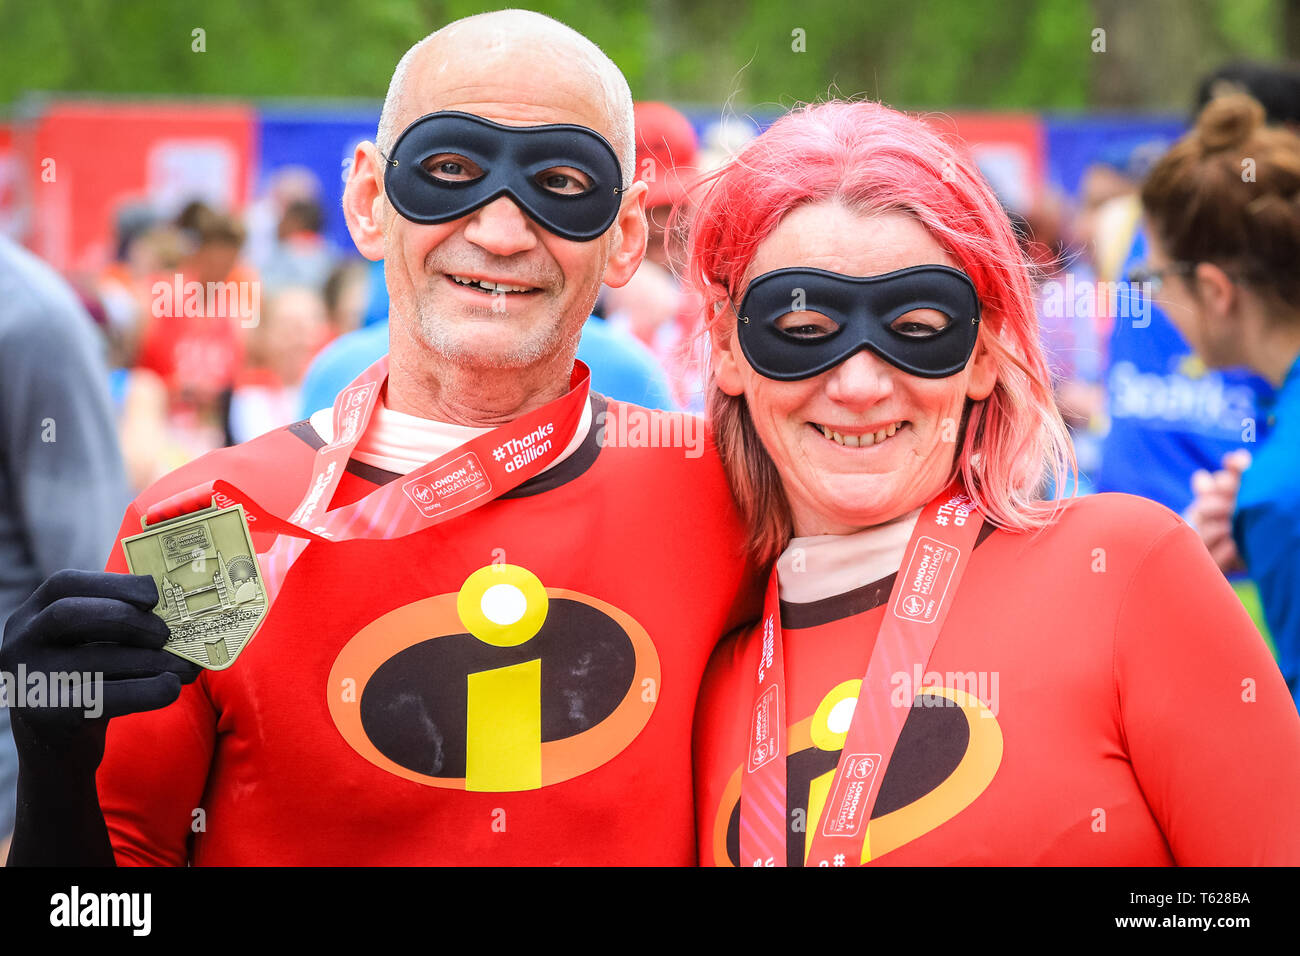 London, UK. 28th Apil 2019. Two superhero runners at the finish line. Over 40,000 starters are once again competing in the Virgin London Marathon, including those who take on the race for charities, in running clubs, in memory of loved ones and as personal lifetime goals. Credit: Imageplotter/Alamy Live News - Stock Image